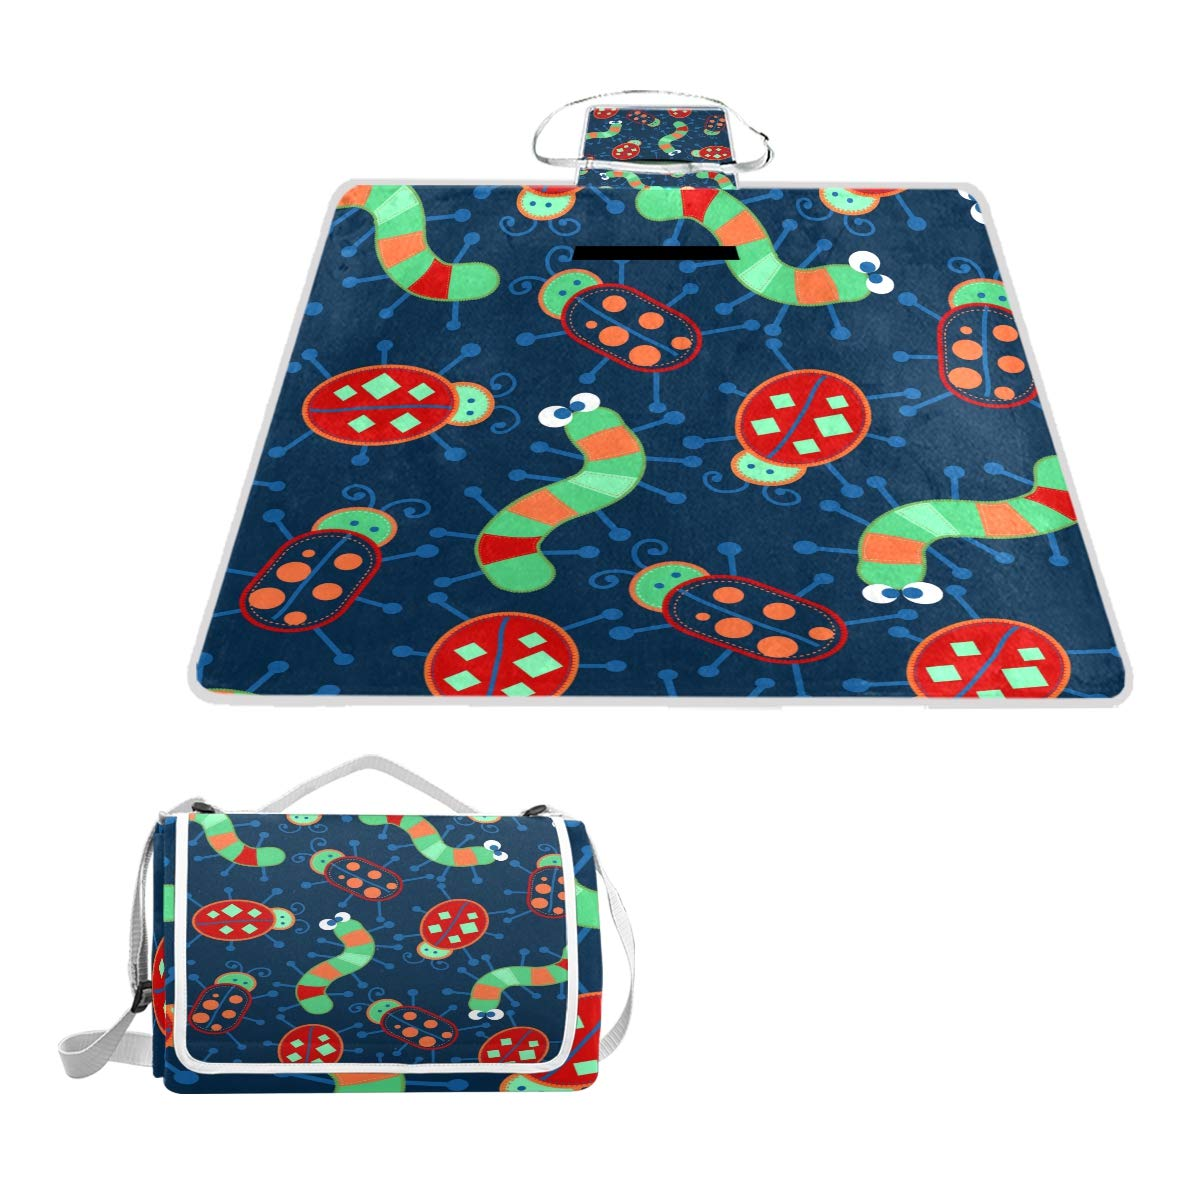 SINOVAL 3 Cute Bugs Large Picnic mat Outdoor Rug Waterproof Camping Blanket Beach mat 57X59 inches